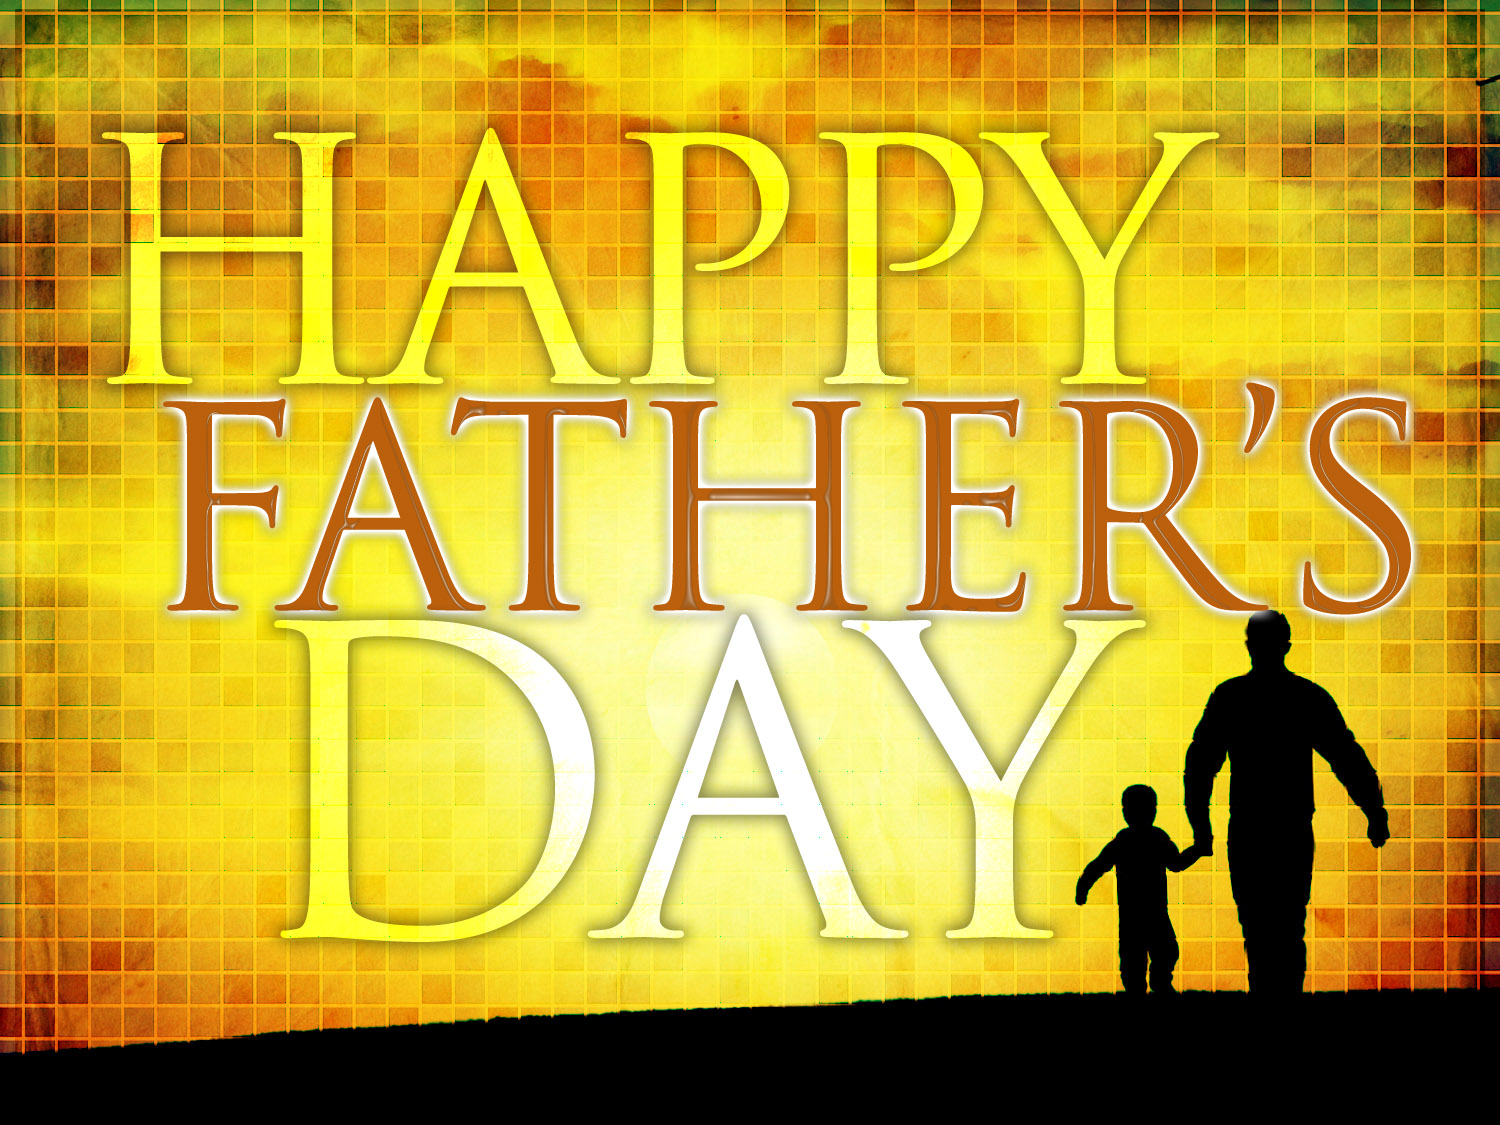 Transparent Fathers Day Image PNG image #7646